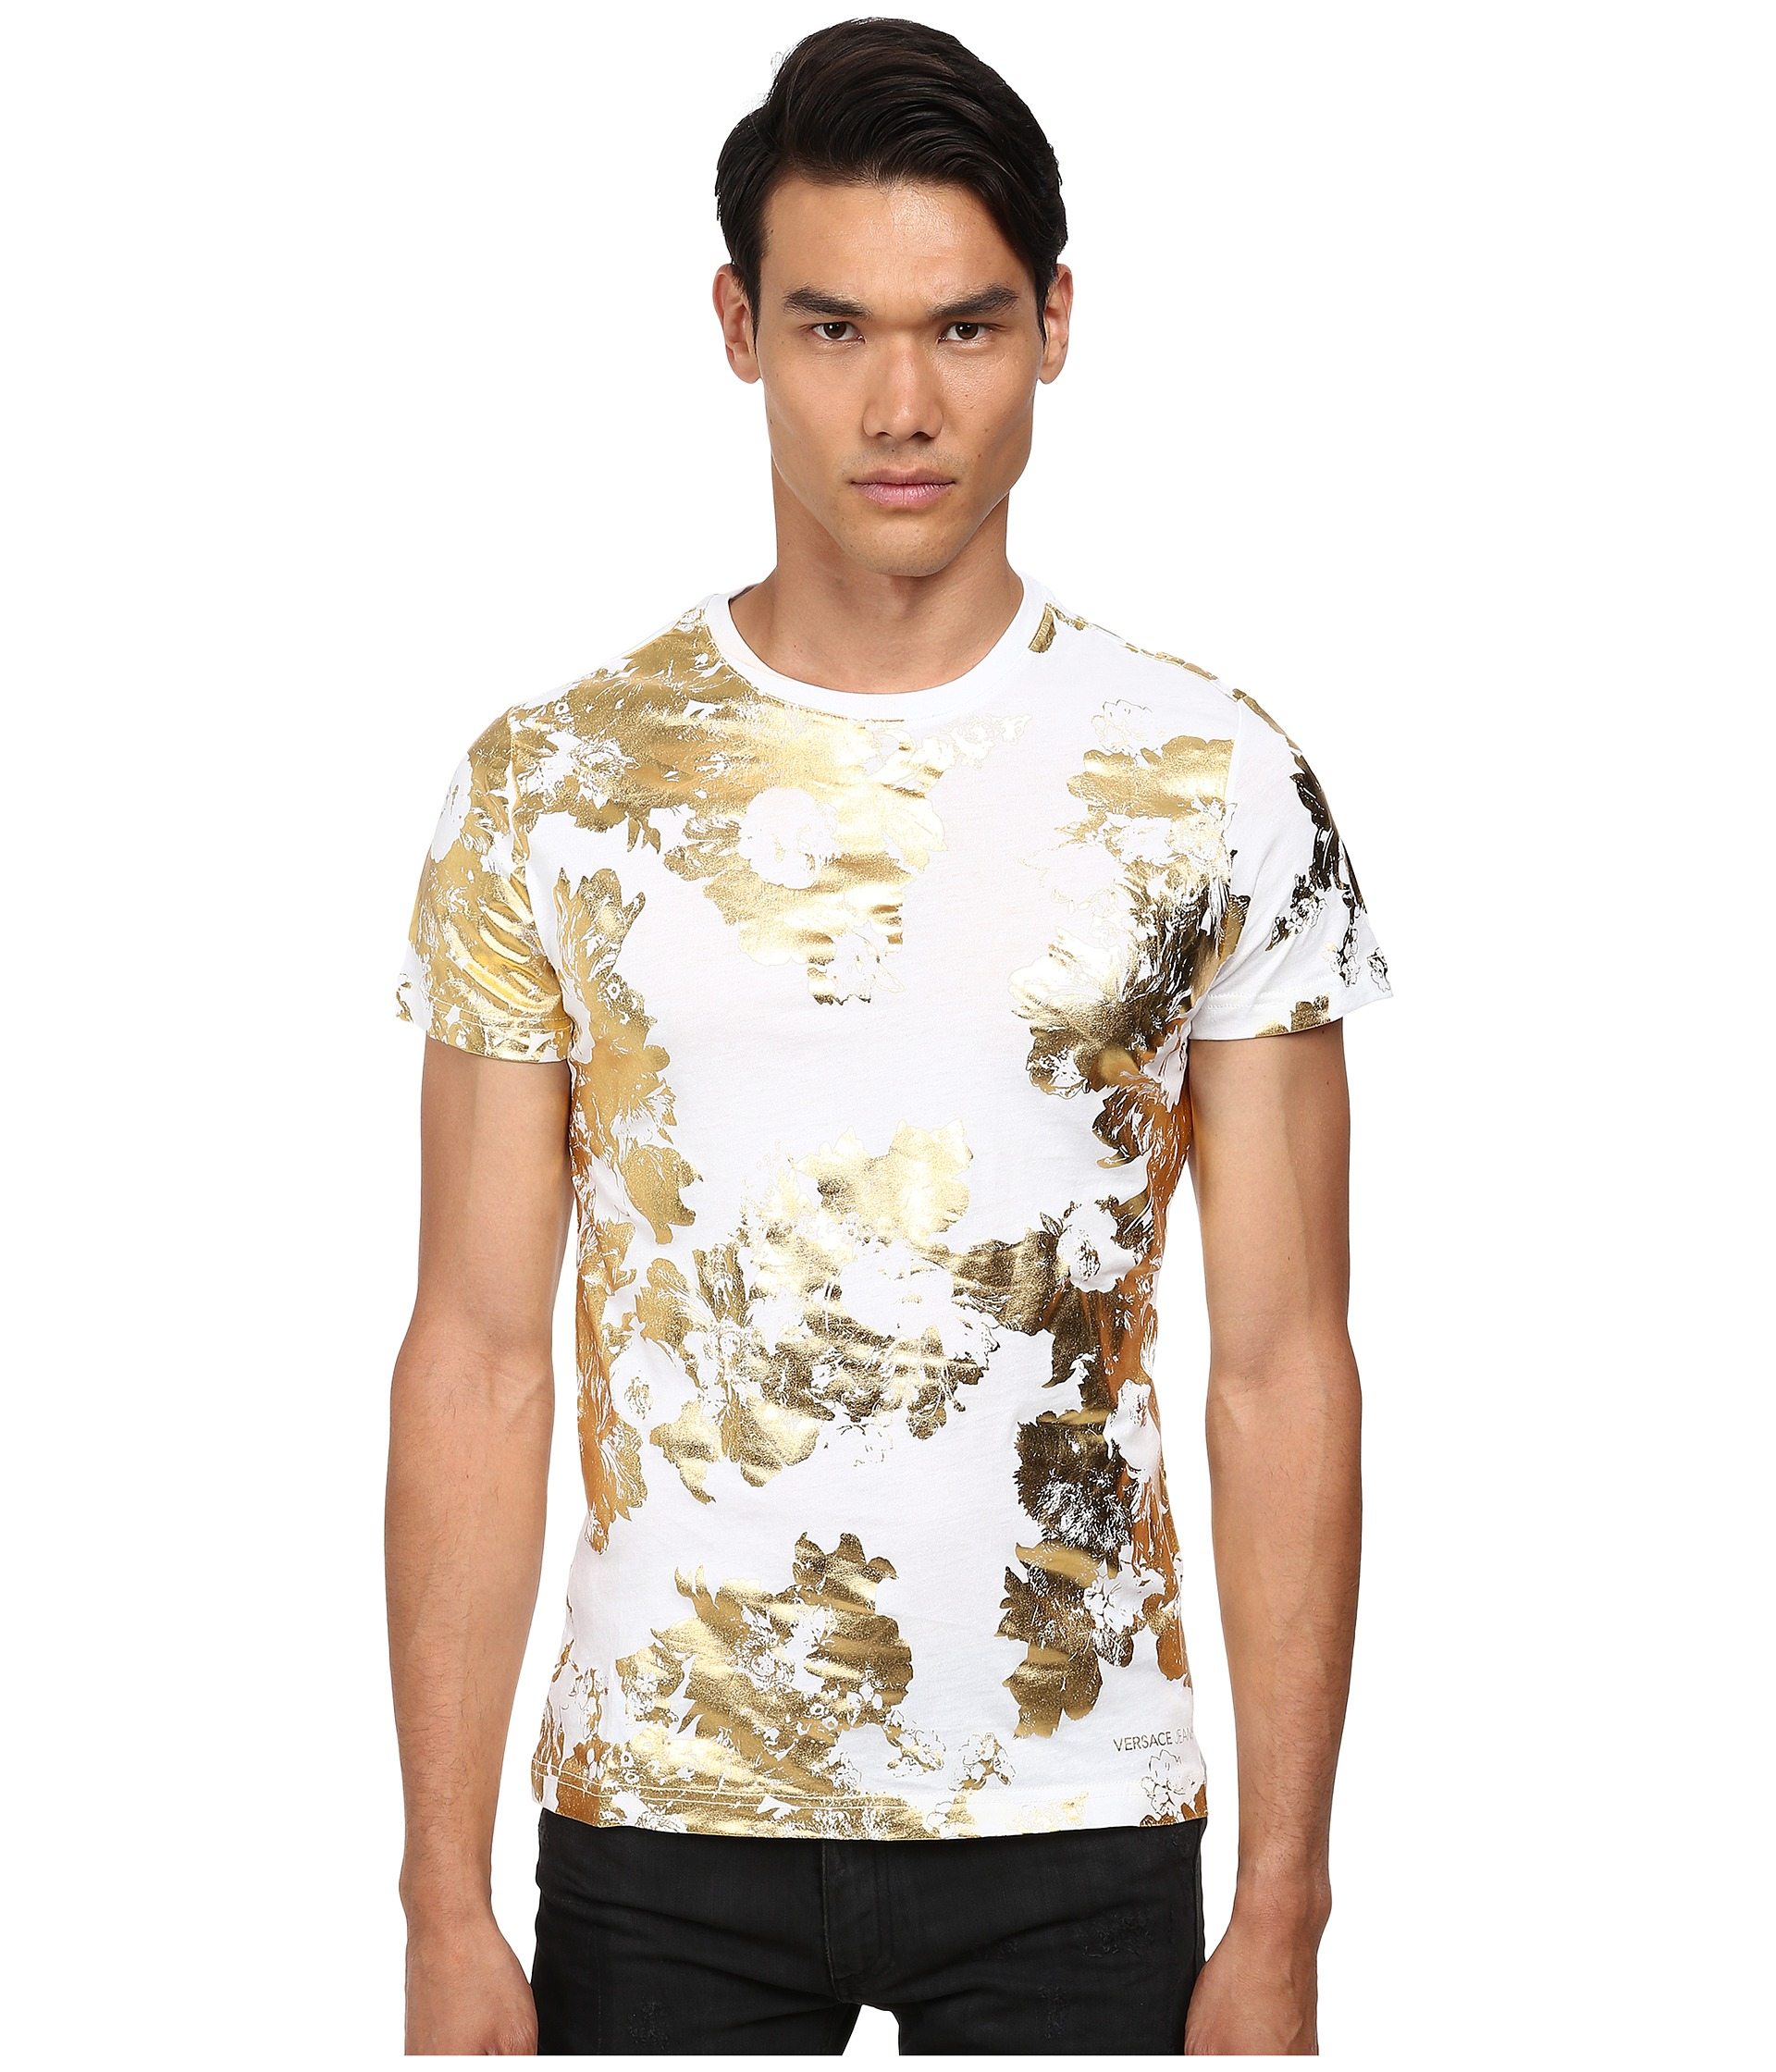 Lyst Versace Jeans Short Sleeve T Shirt With Gold Foil